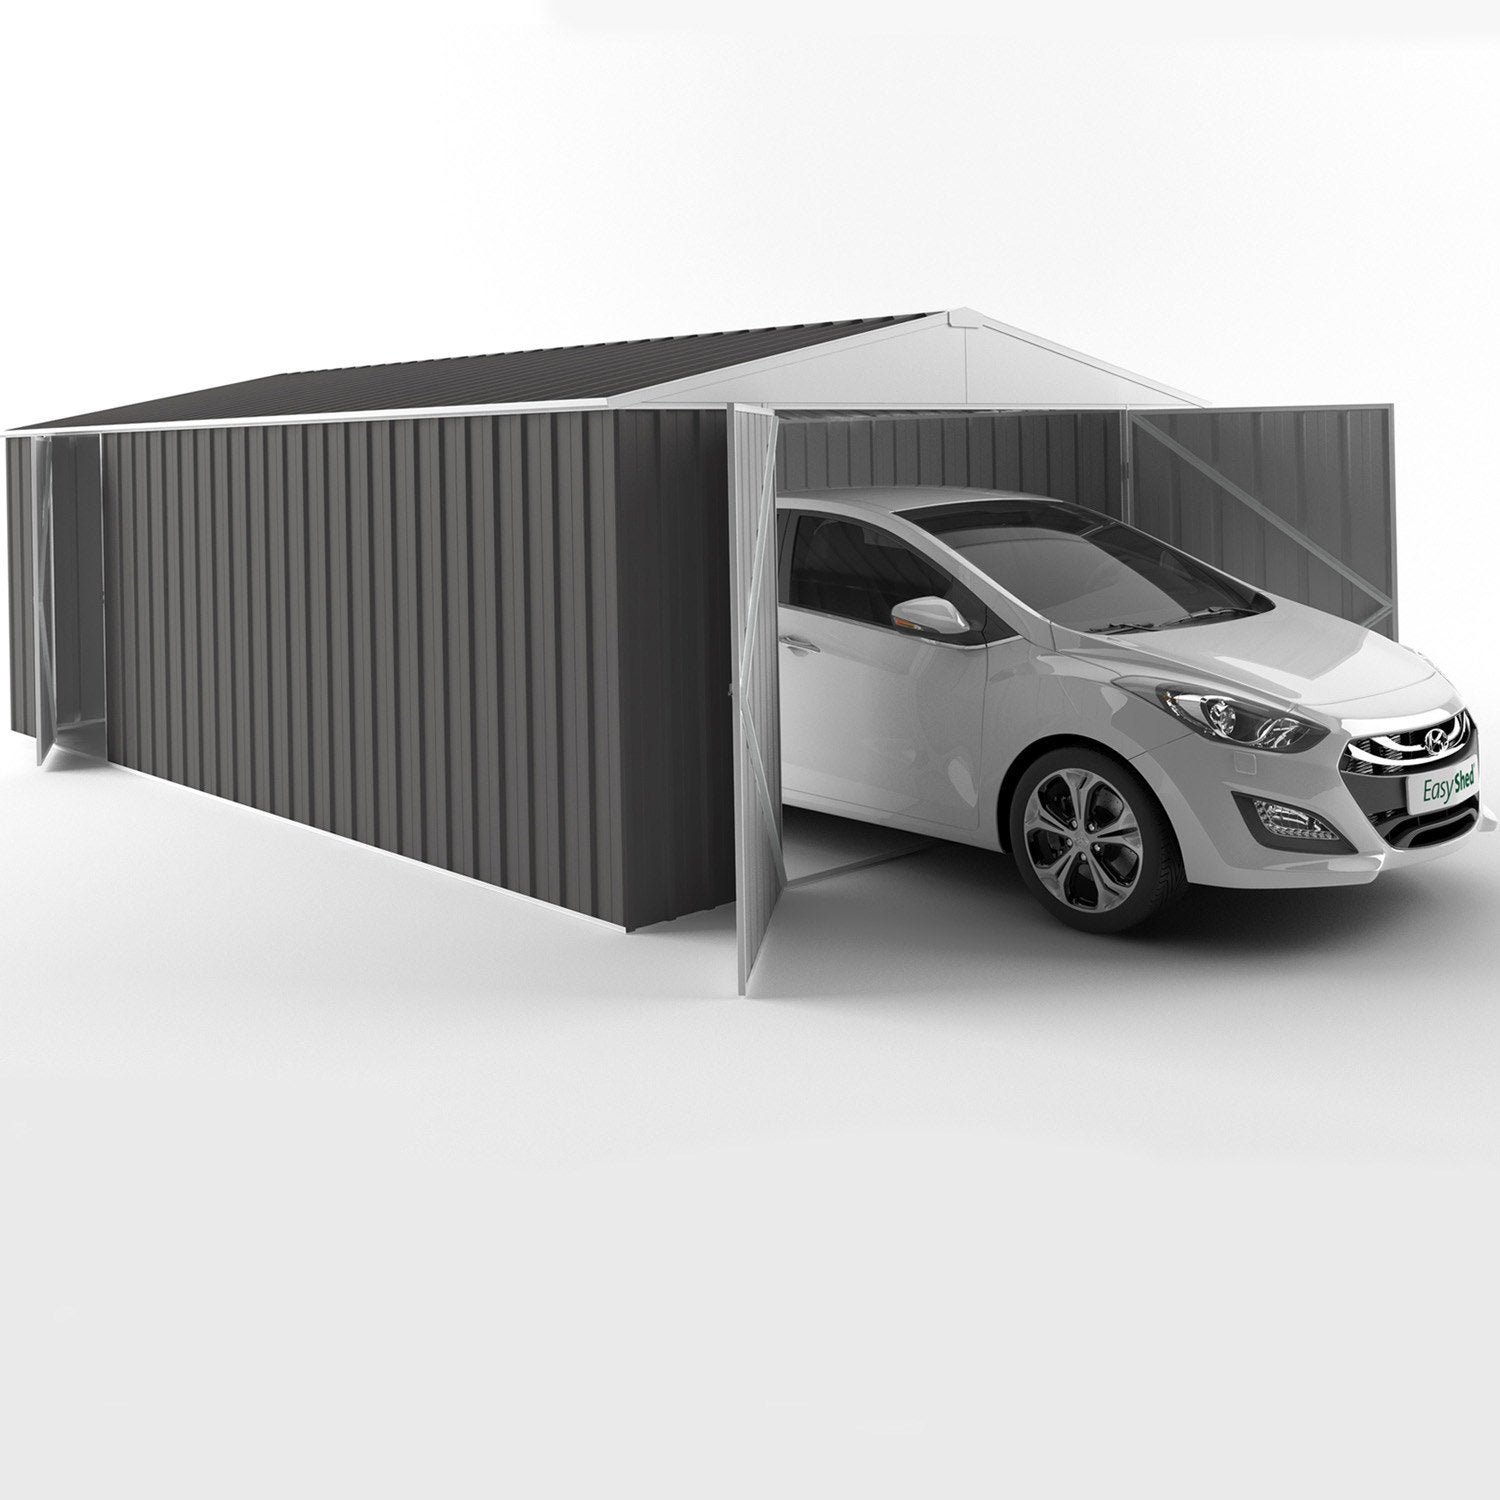 garage metal leroy merlin ... Garage métal Easysheed 1 voiture, 19.24 m²